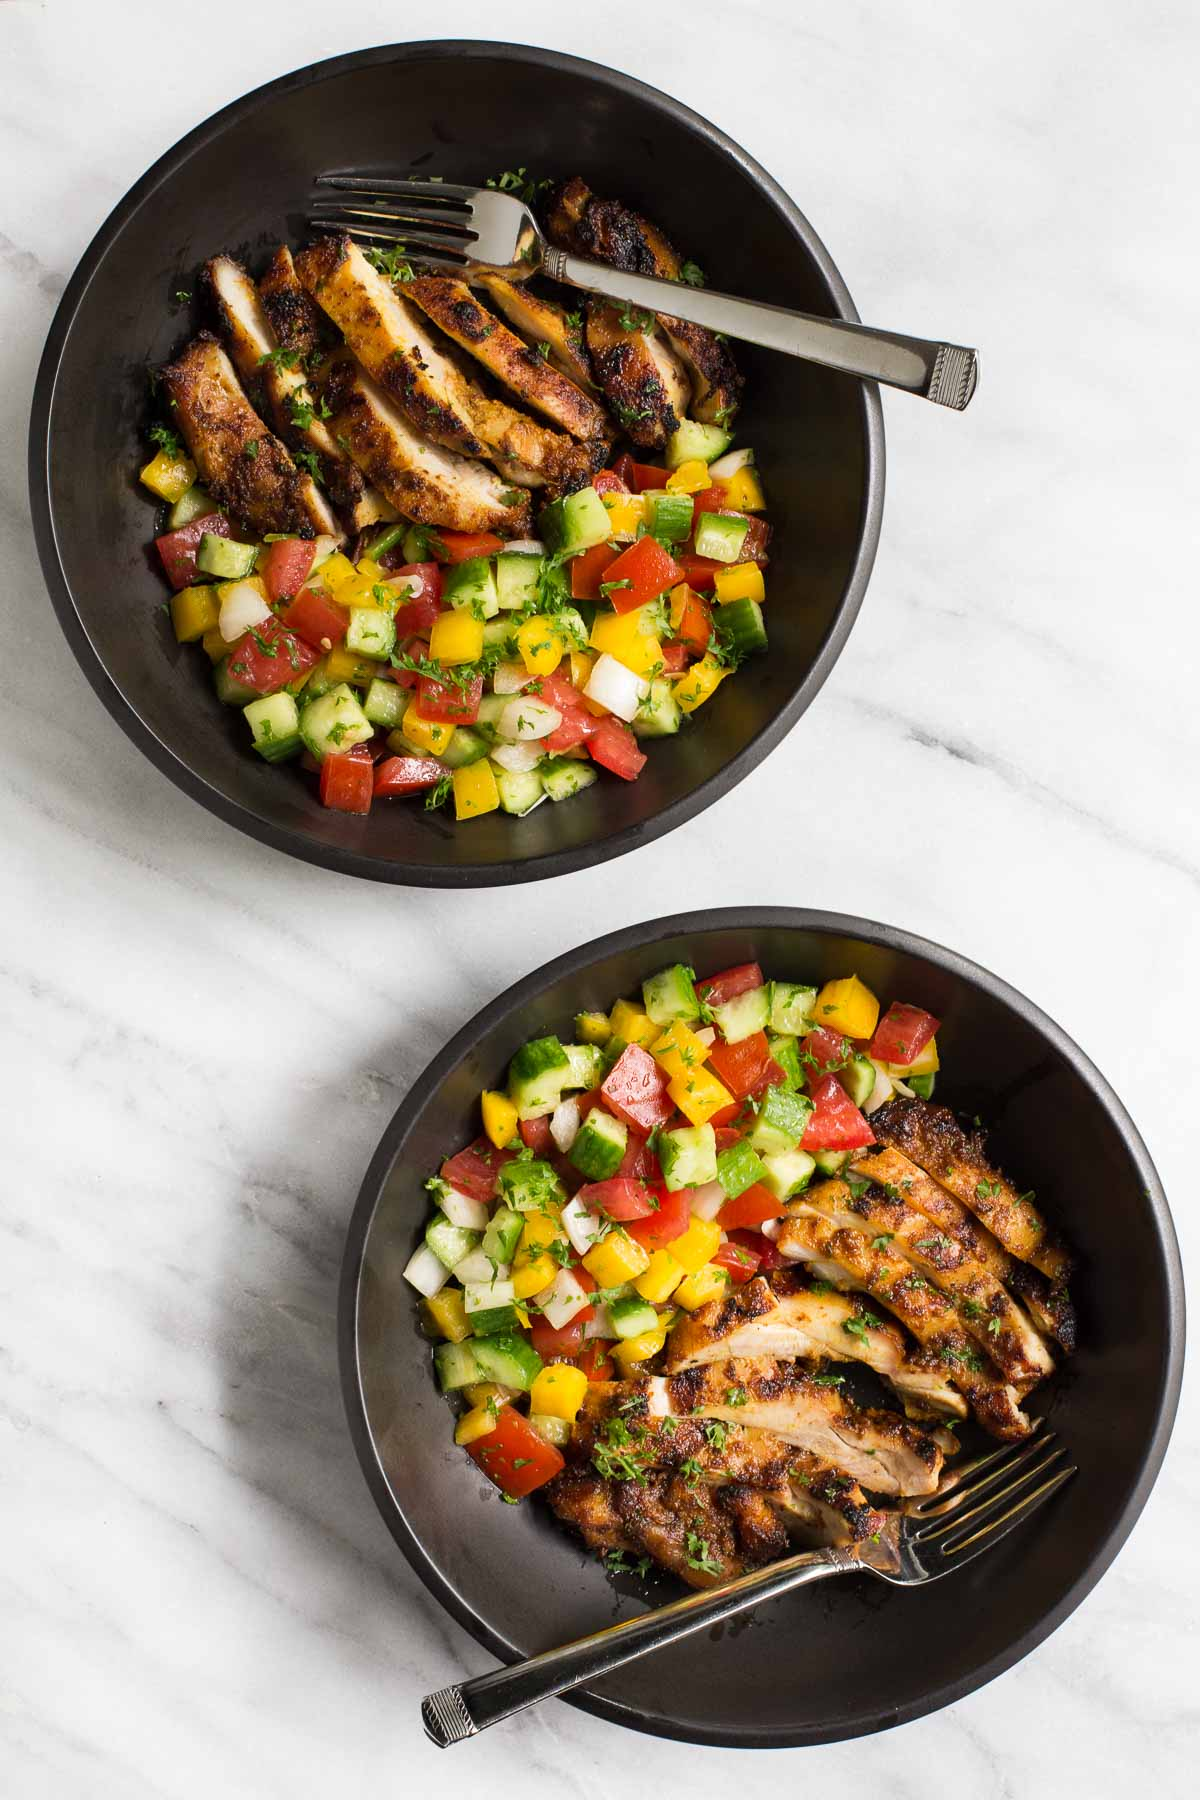 Overhead photo of two black bowls filled with Grilled Chicken Shawarma and